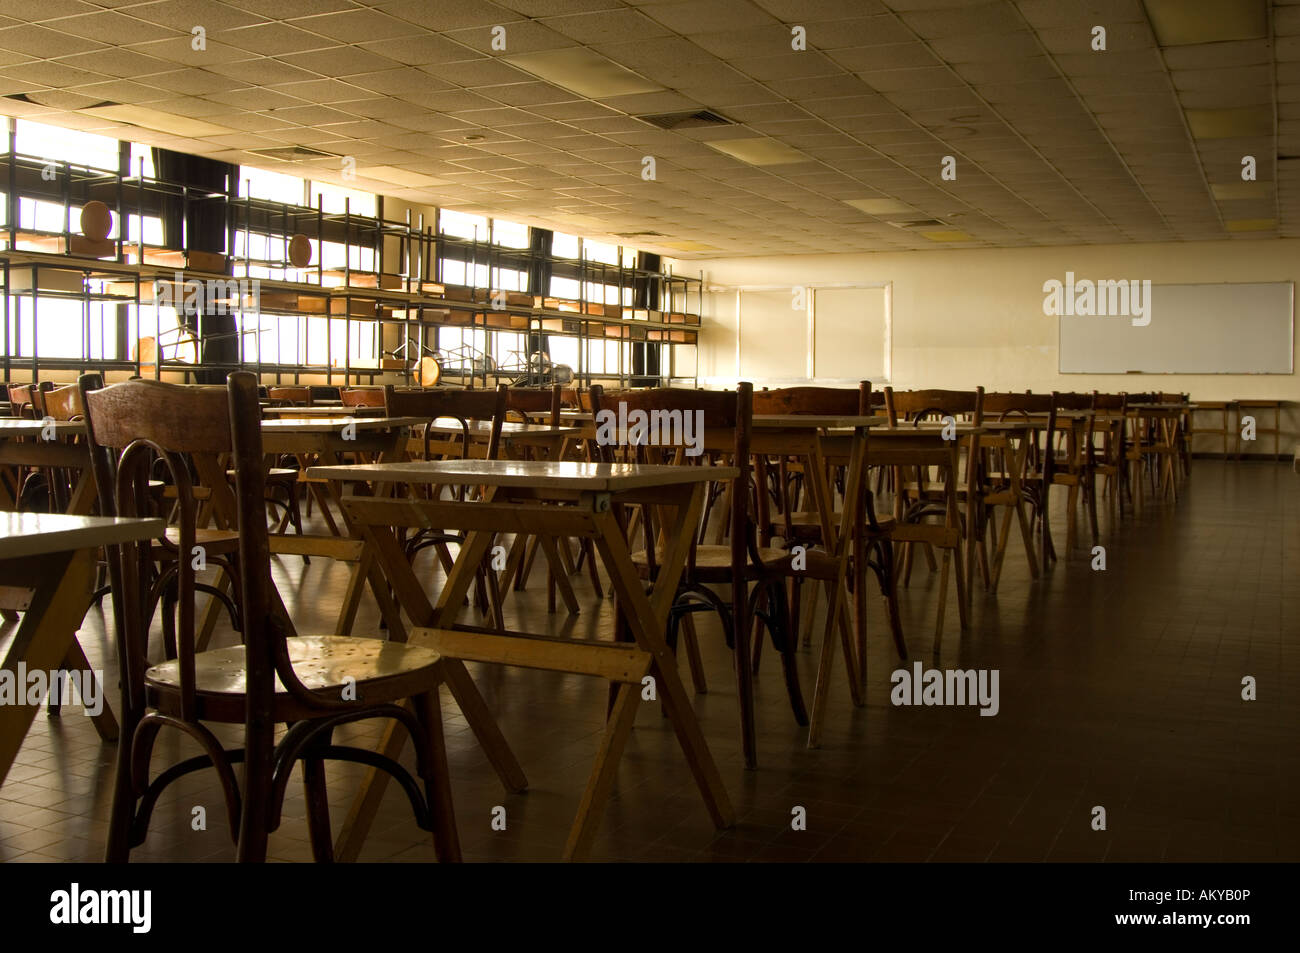 Empty university lecture hall - Stock Image